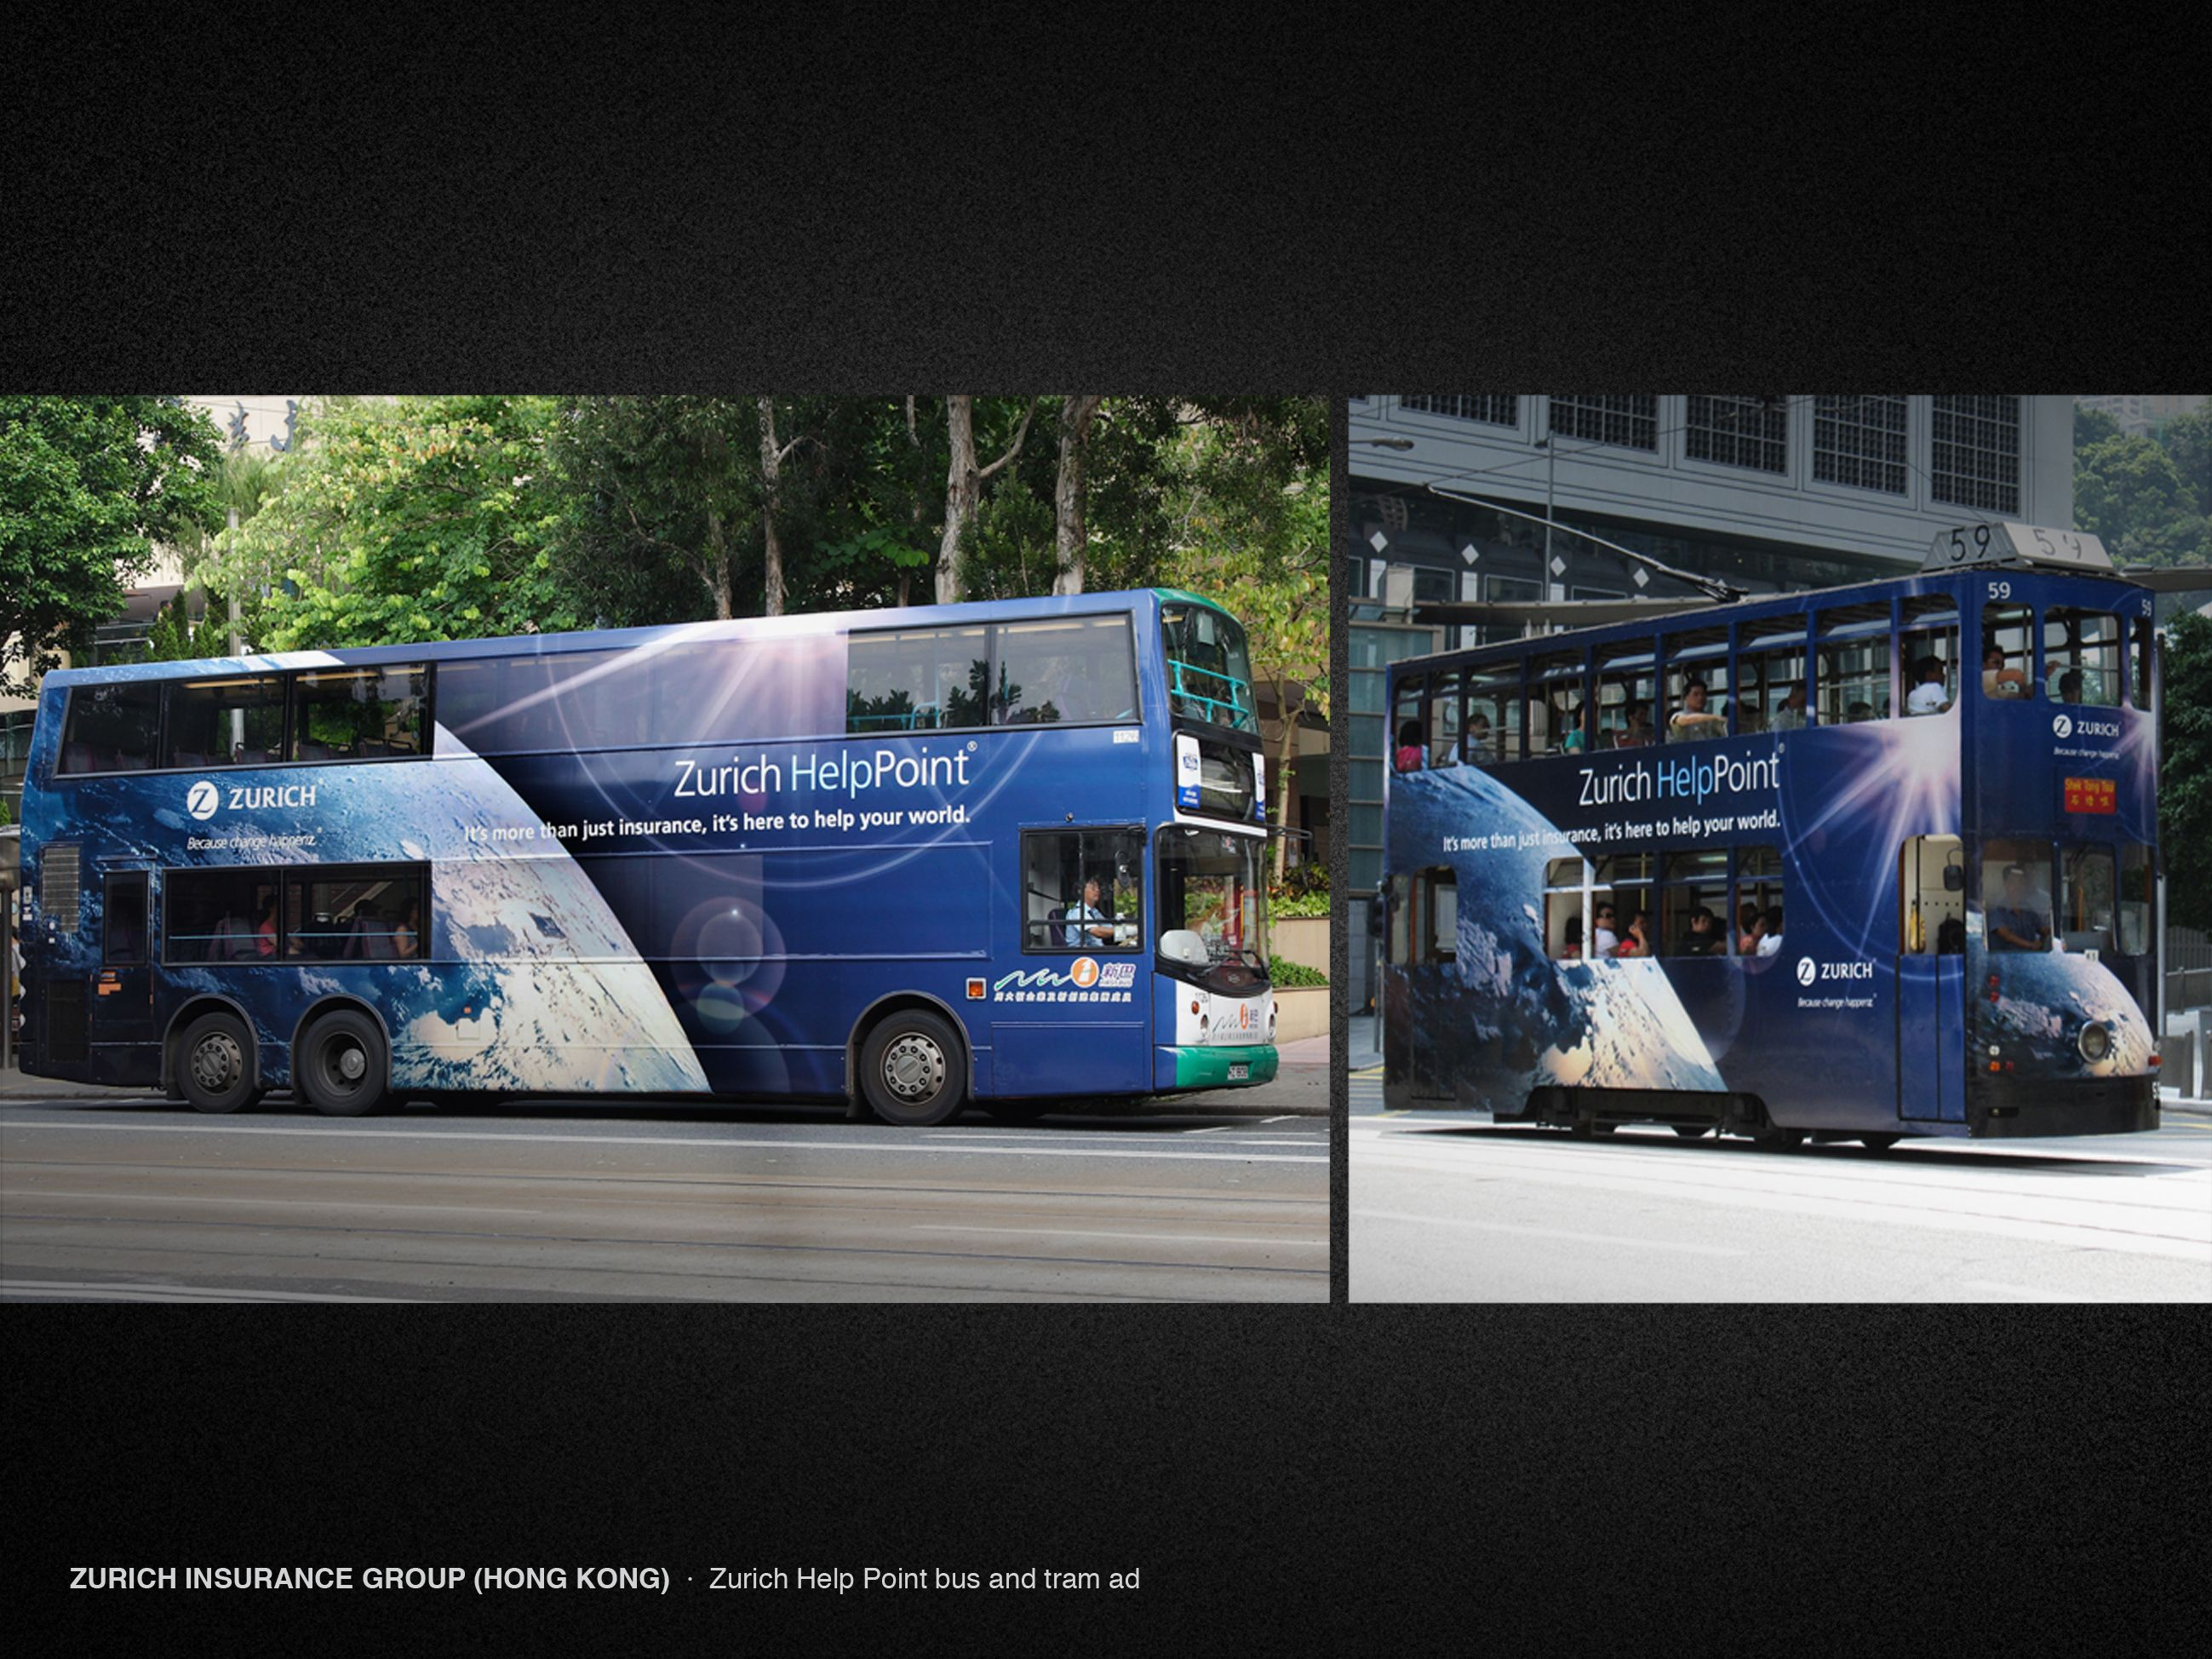 Zurich Insurance Group Hong Kong Zurich Help Point Bus And